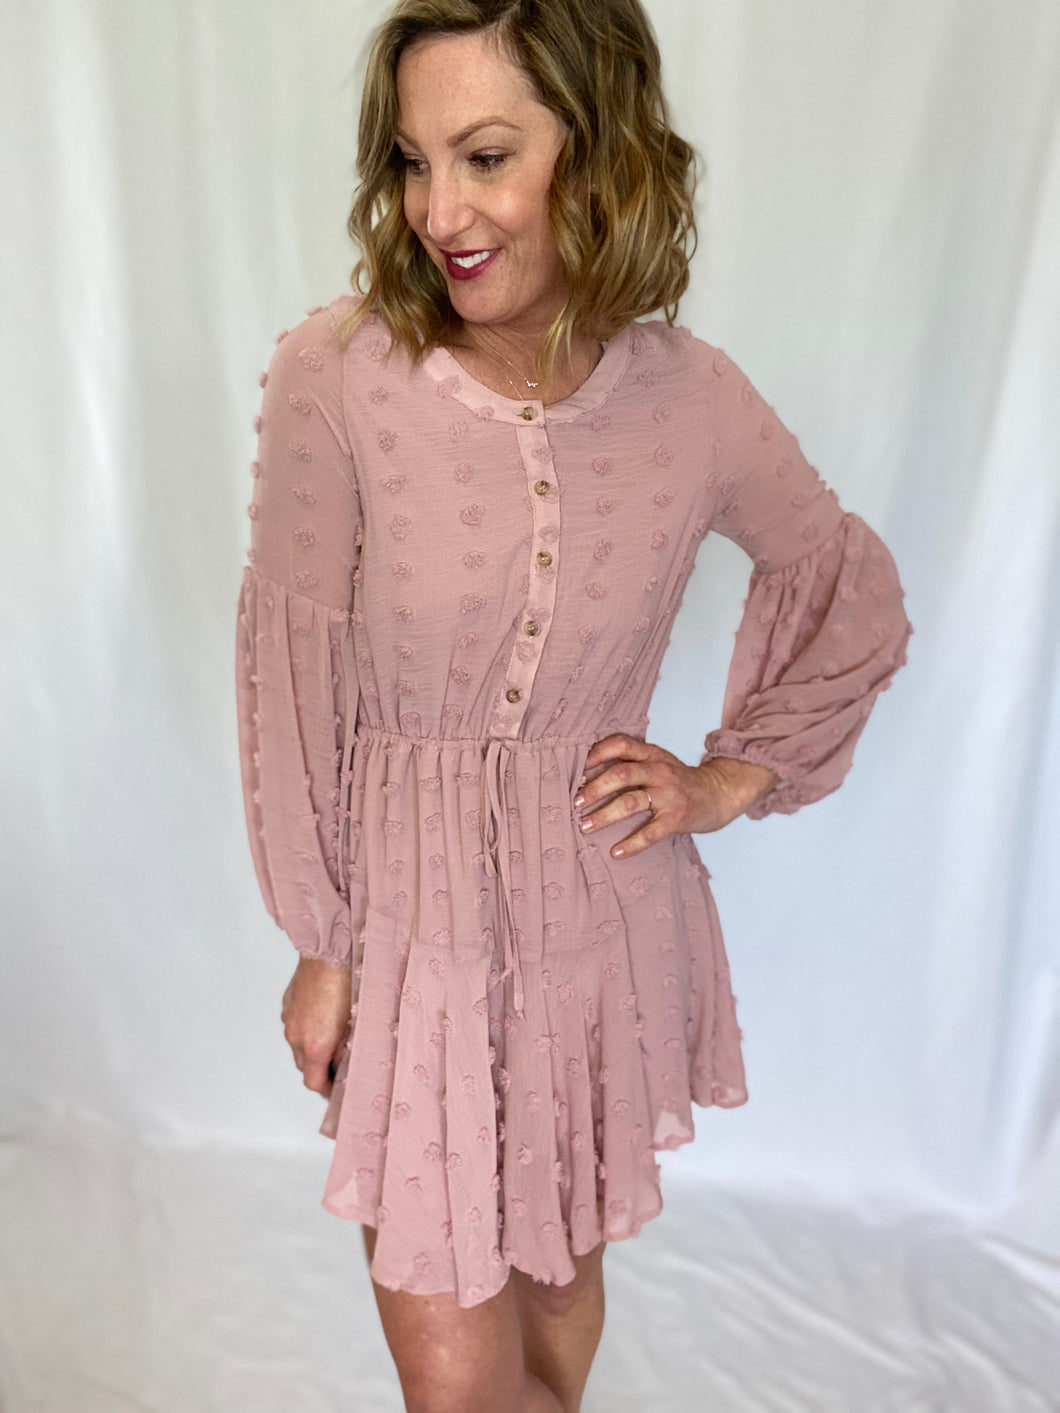 Keep Me Company Textured Pink Dress